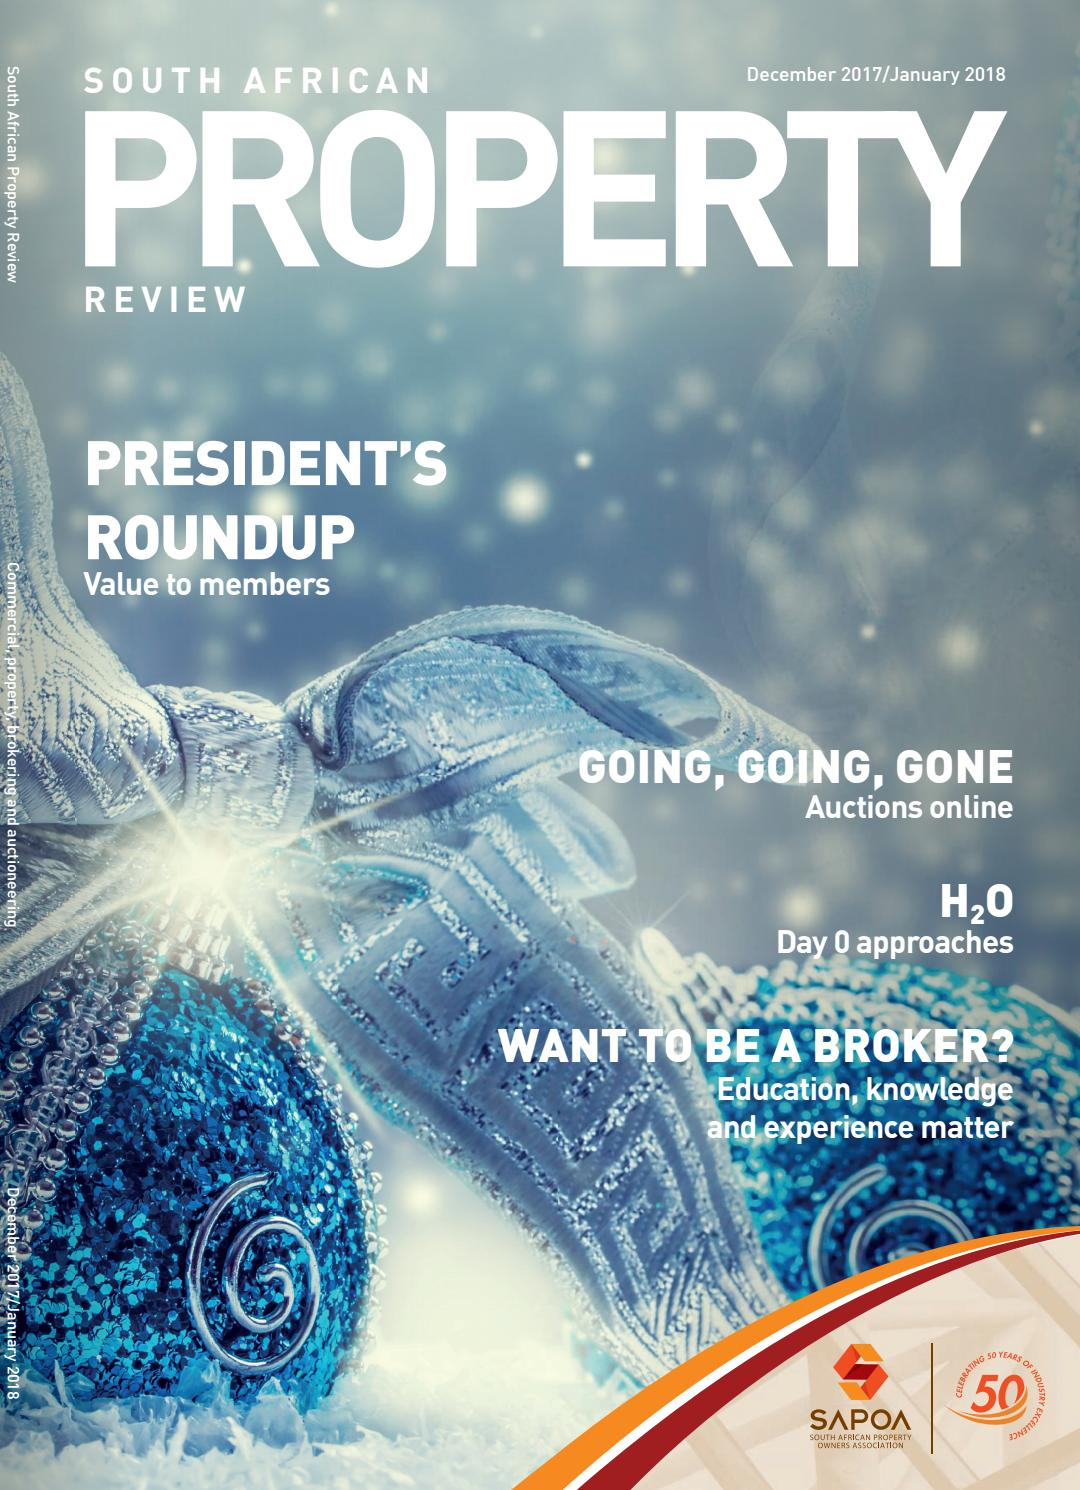 7c1f8db88d52 South African Property Review Dec Jan 2018 by SAPOA - issuu